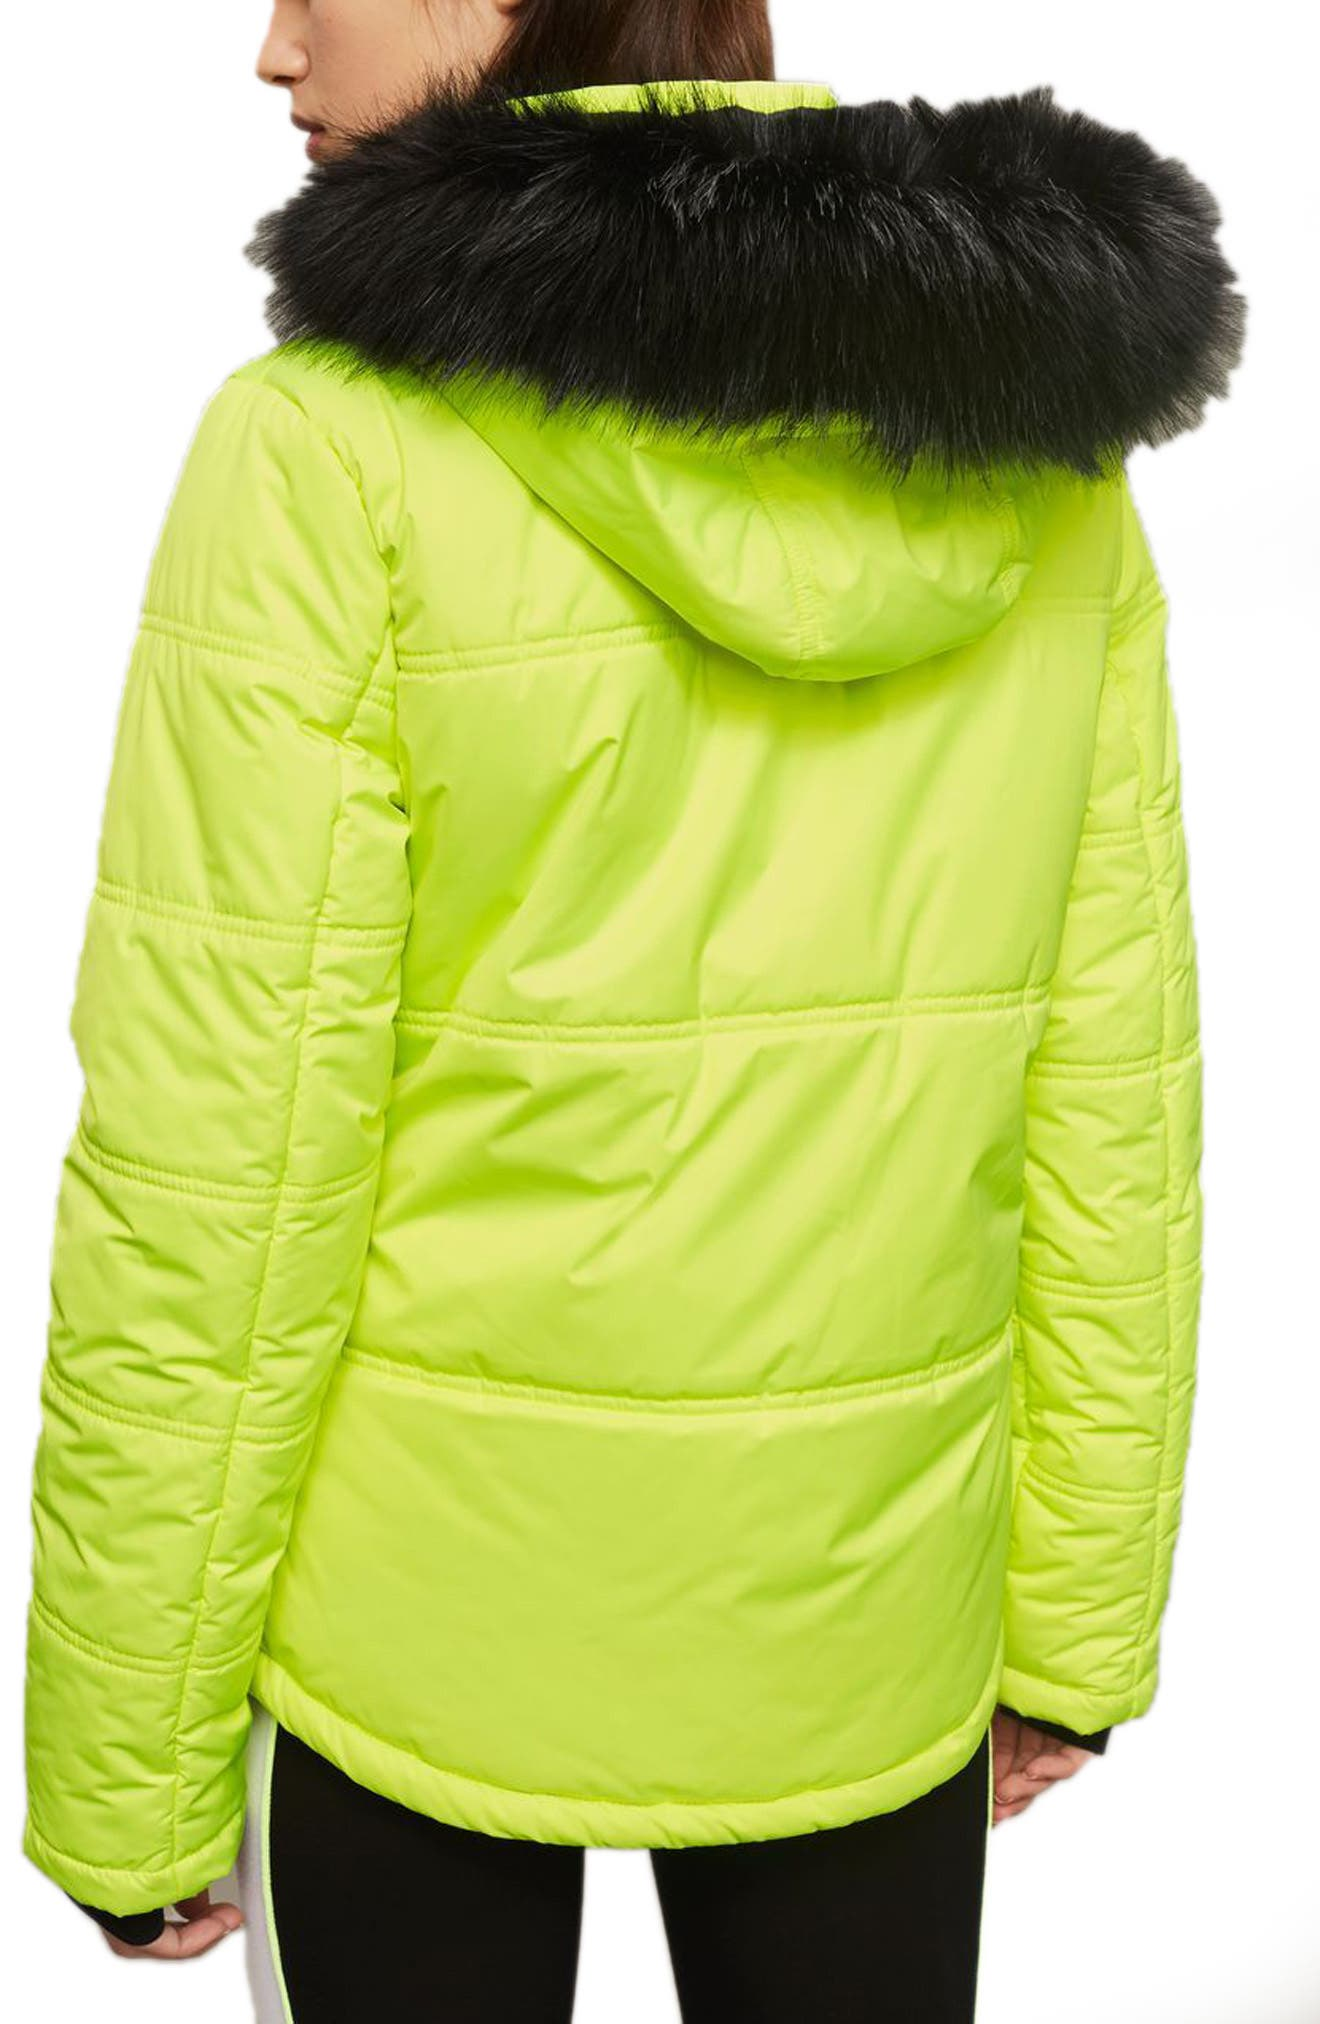 SNO Rio Faux Fur Hood Neon Puffer Jacket,                             Alternate thumbnail 4, color,